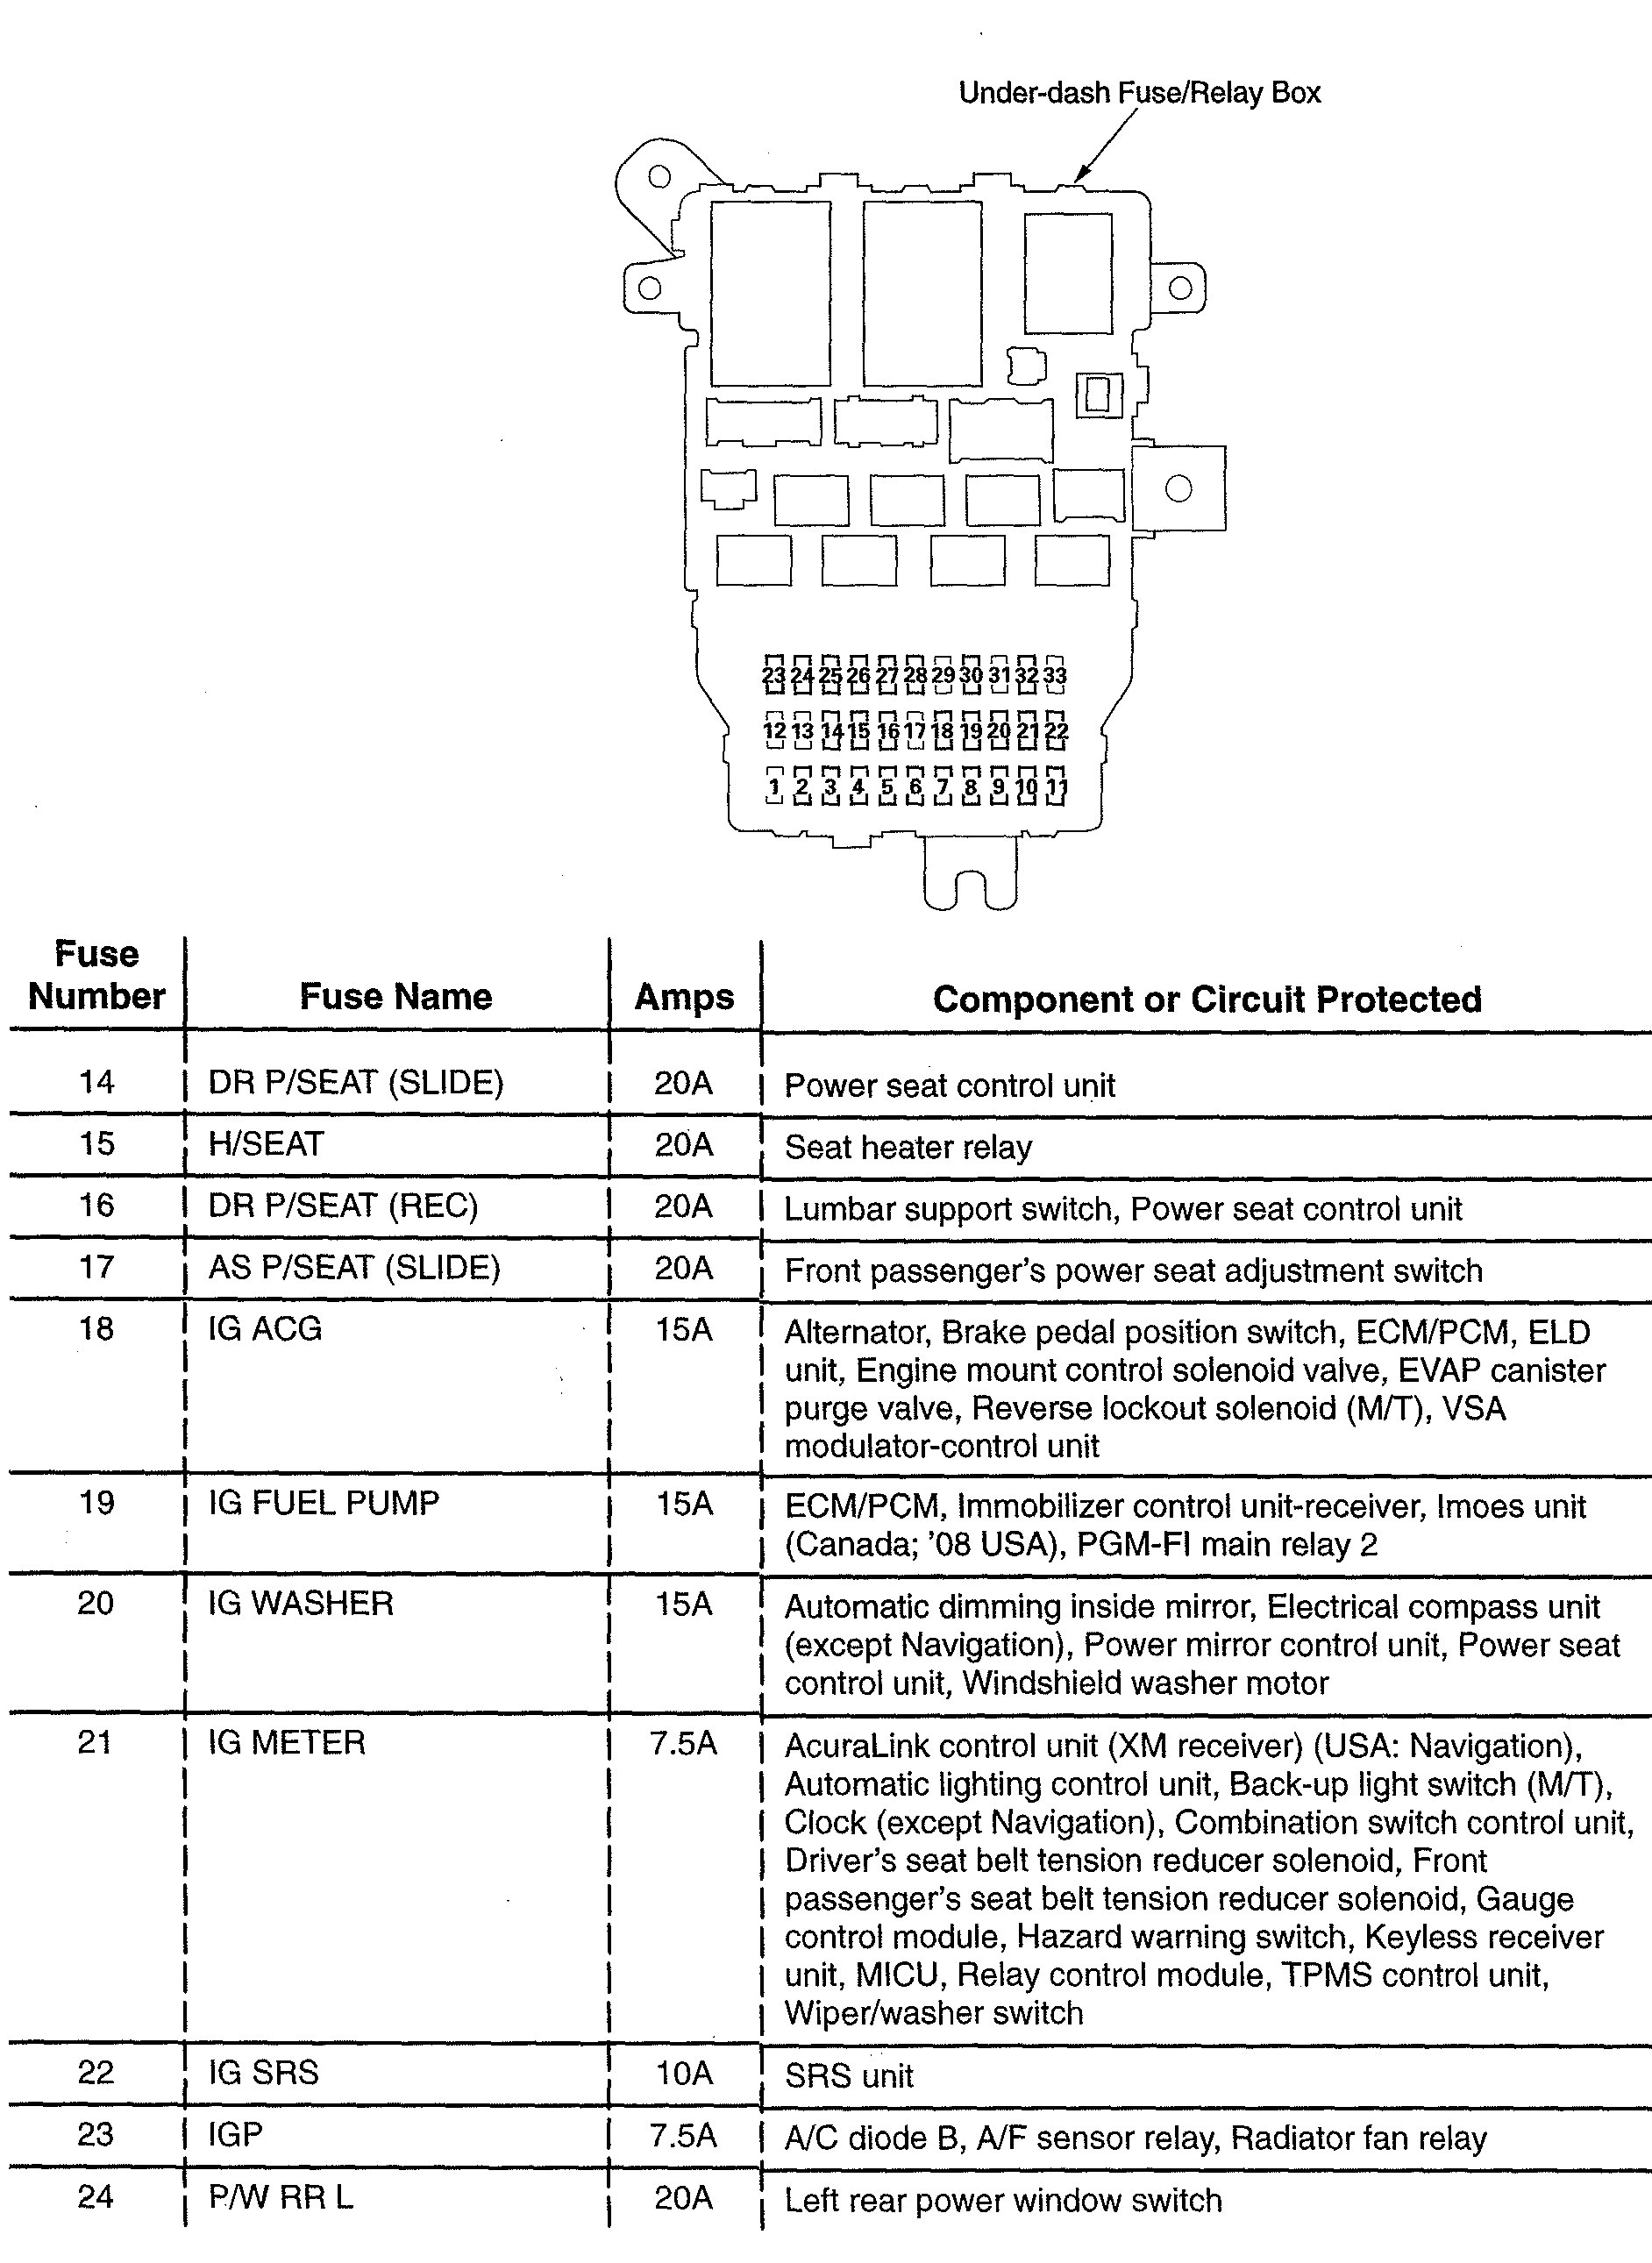 Fuse Box In Acura Tl Another Blog About Wiring Diagram 2007 Tsx 2008 Diagrams Panel Carknowledge 2012